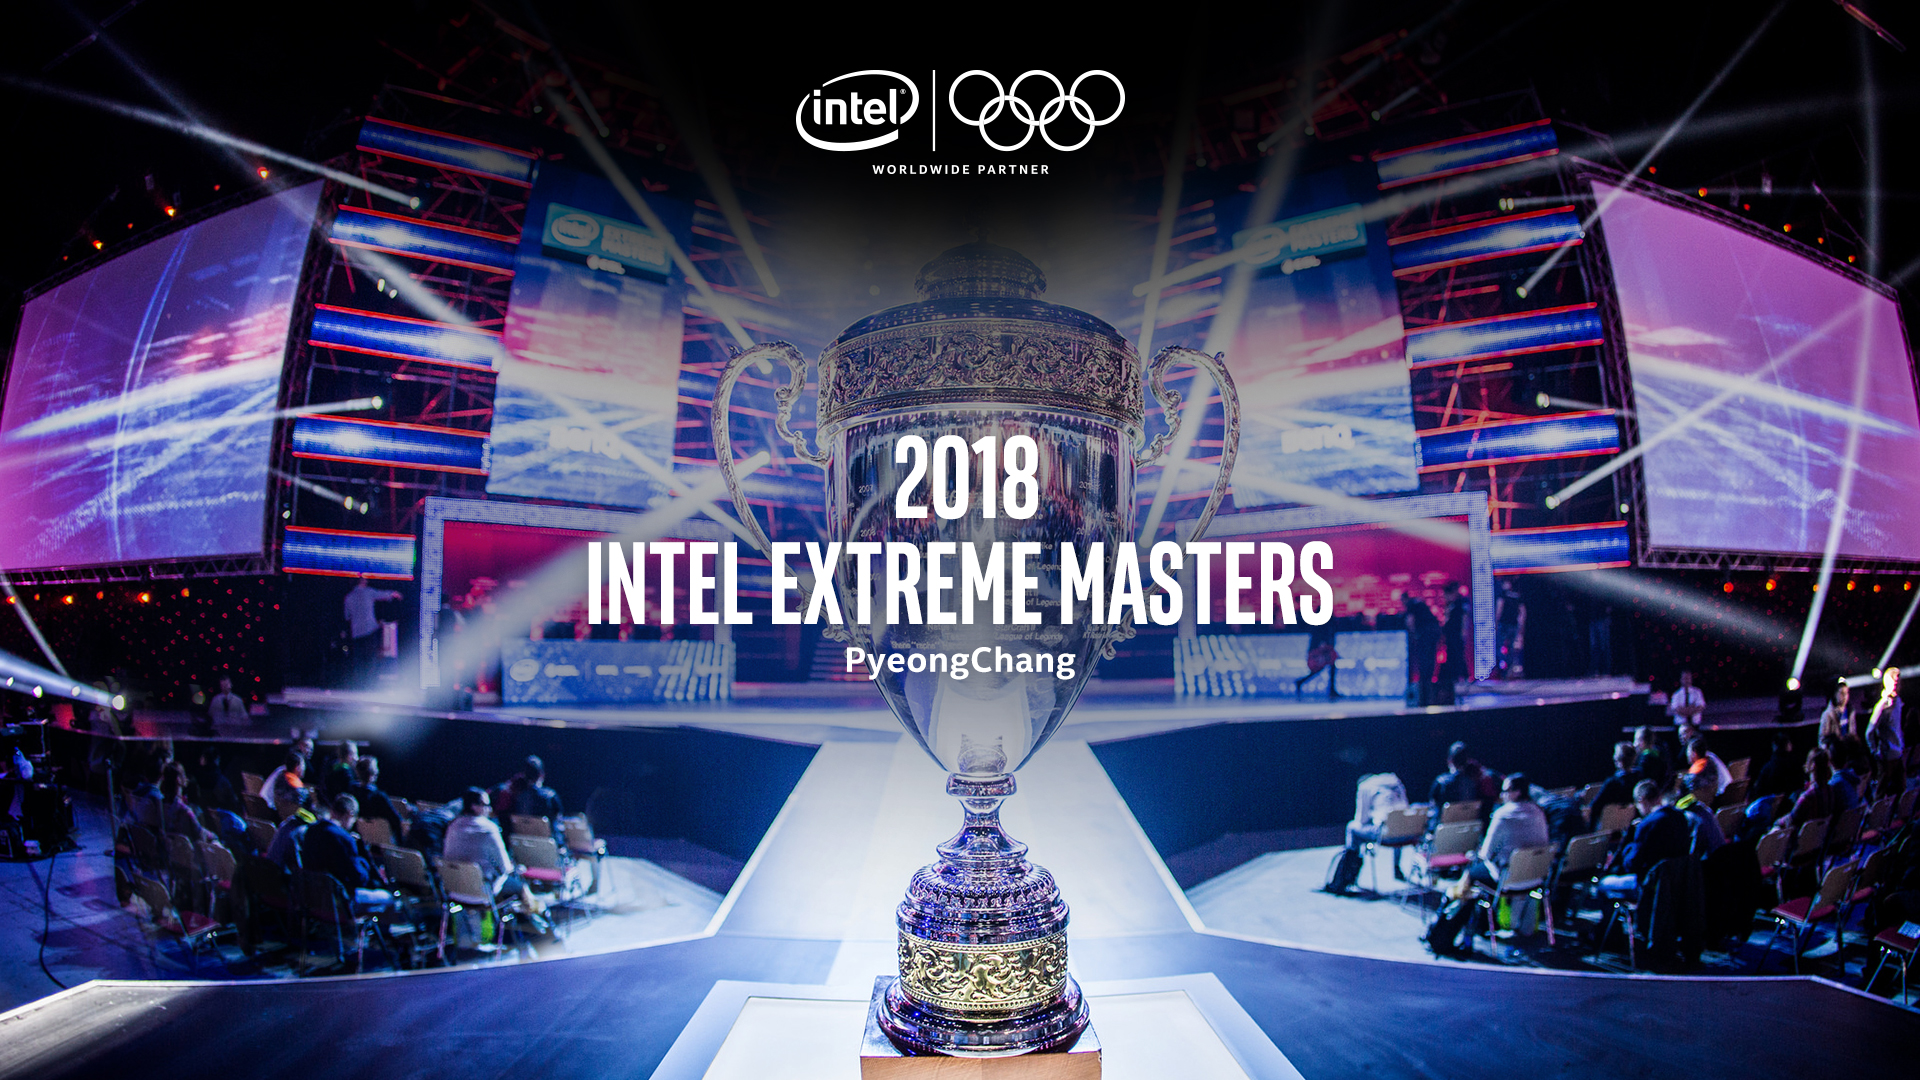 Intel Extreme Masters PyeongChang Olympic Winter Games 2018